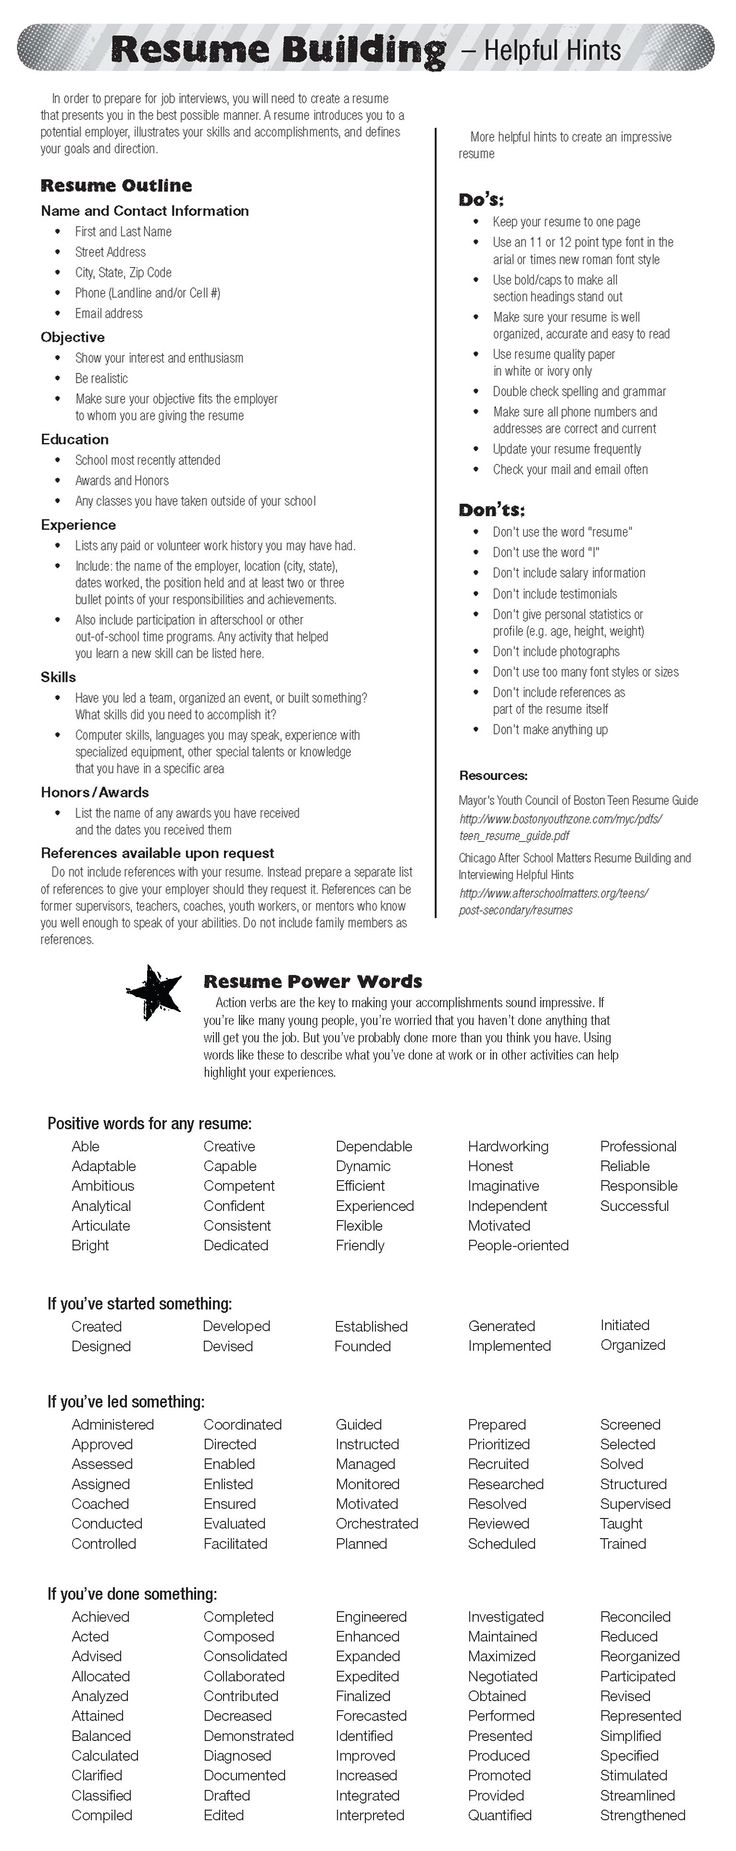 134 best jobs images on pinterest resume tips resume ideas and